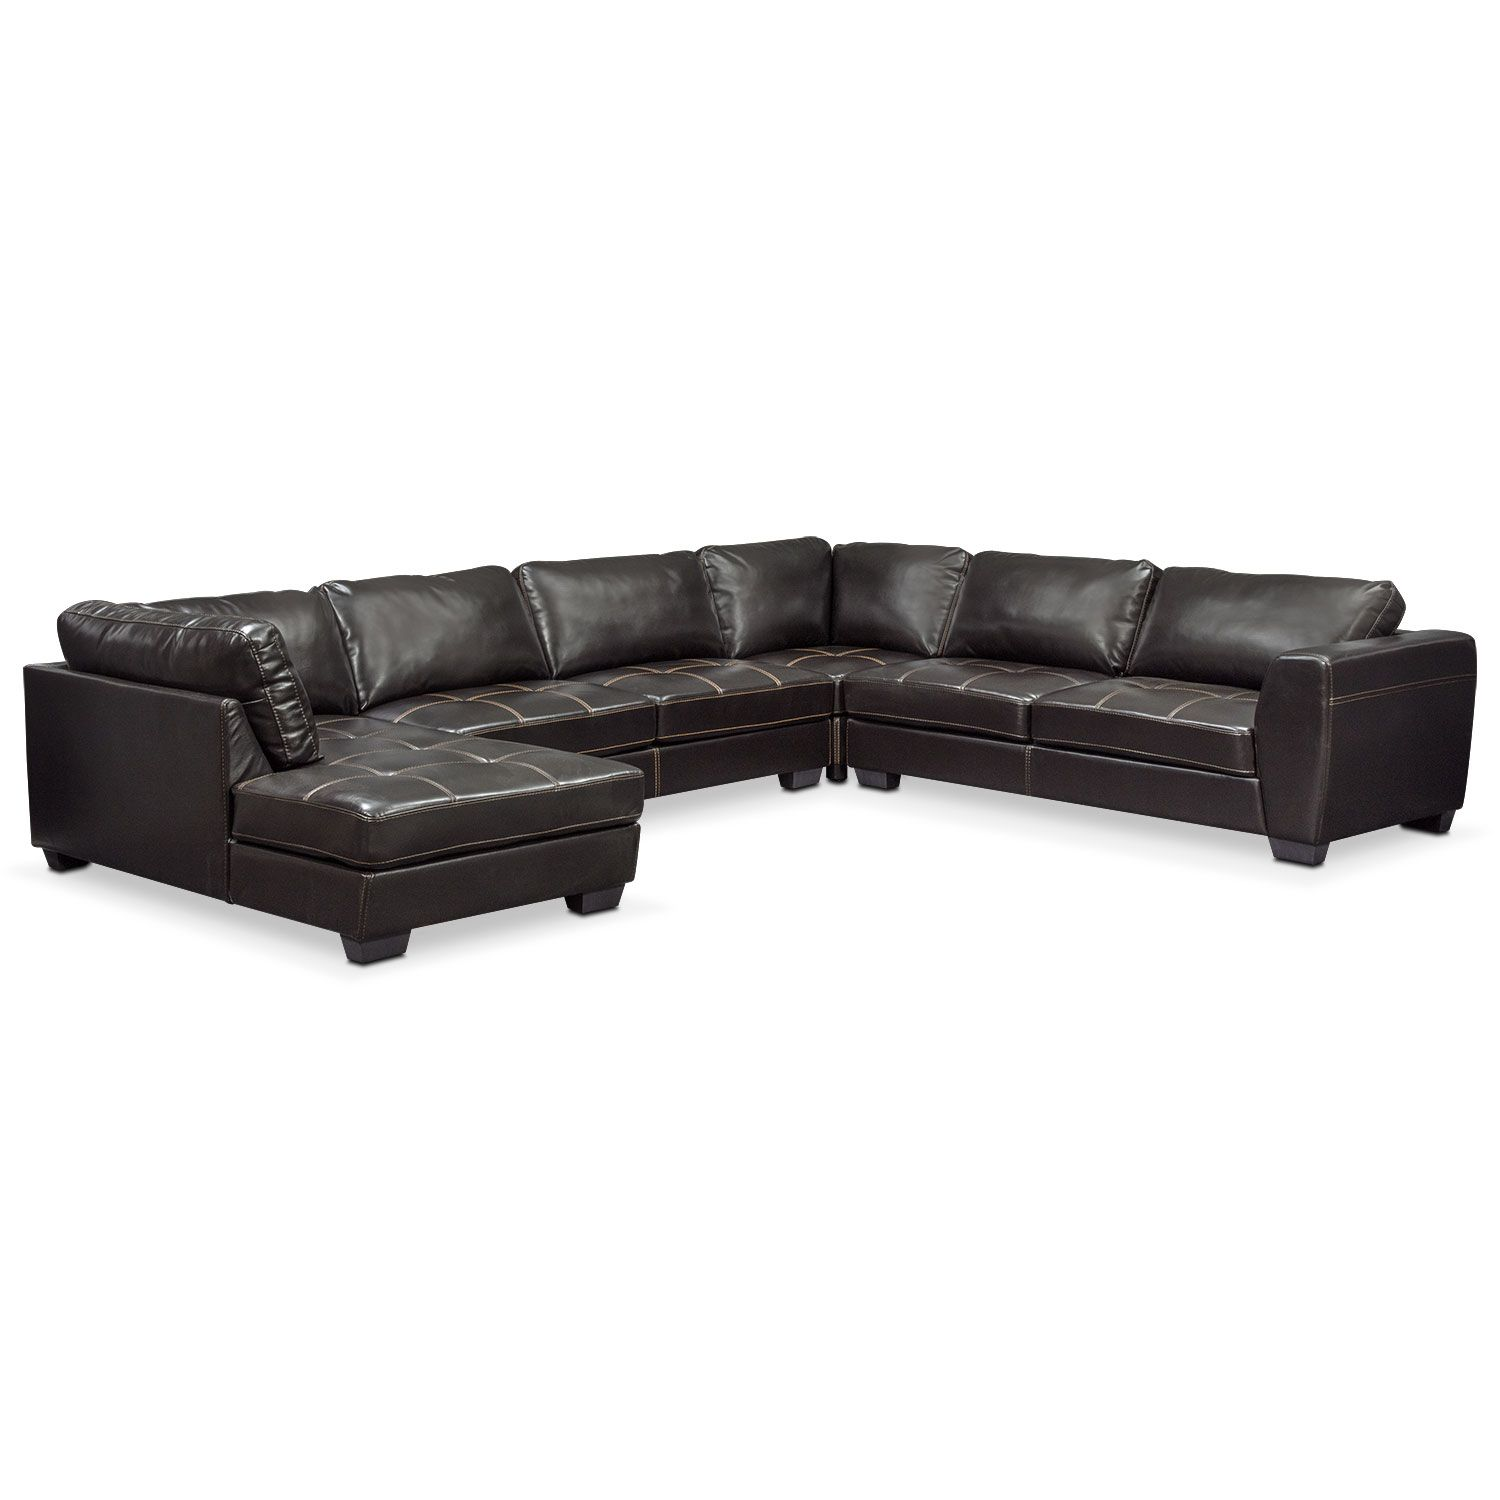 Living Room Furniture Santana 4 Piece Sectional with Left Facing